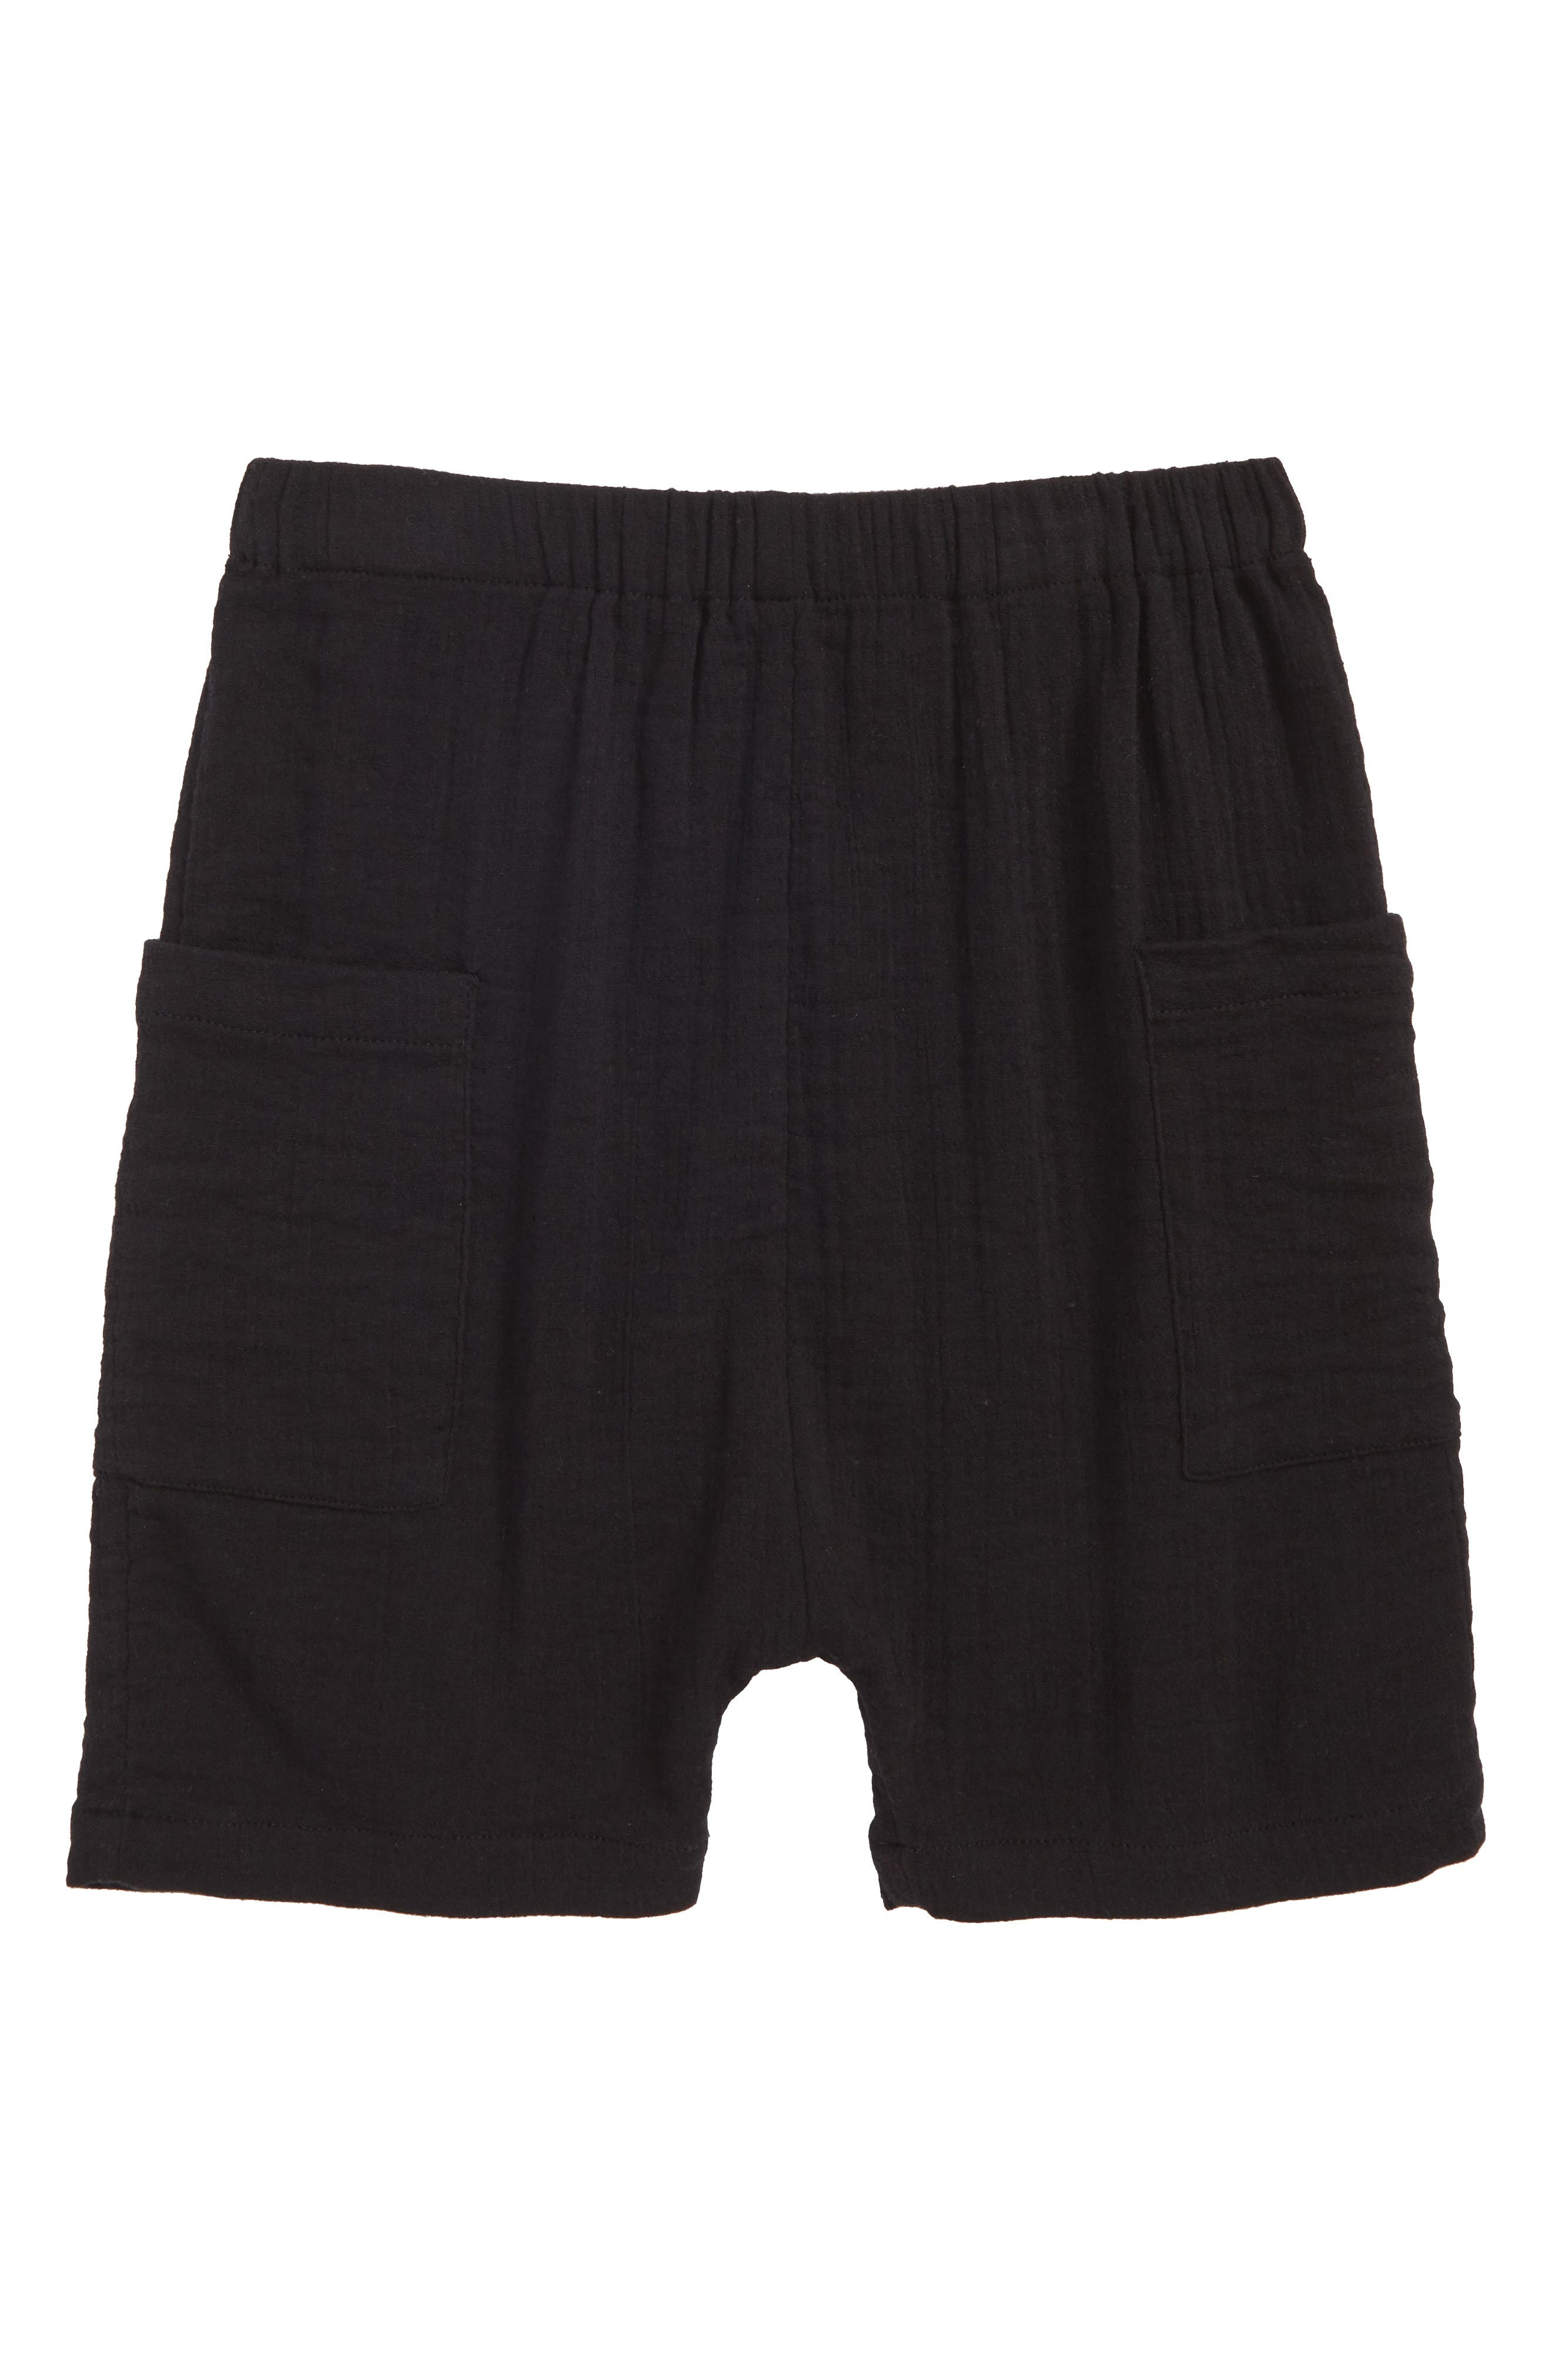 Textured Pocket Shorts,                             Main thumbnail 1, color,                             001